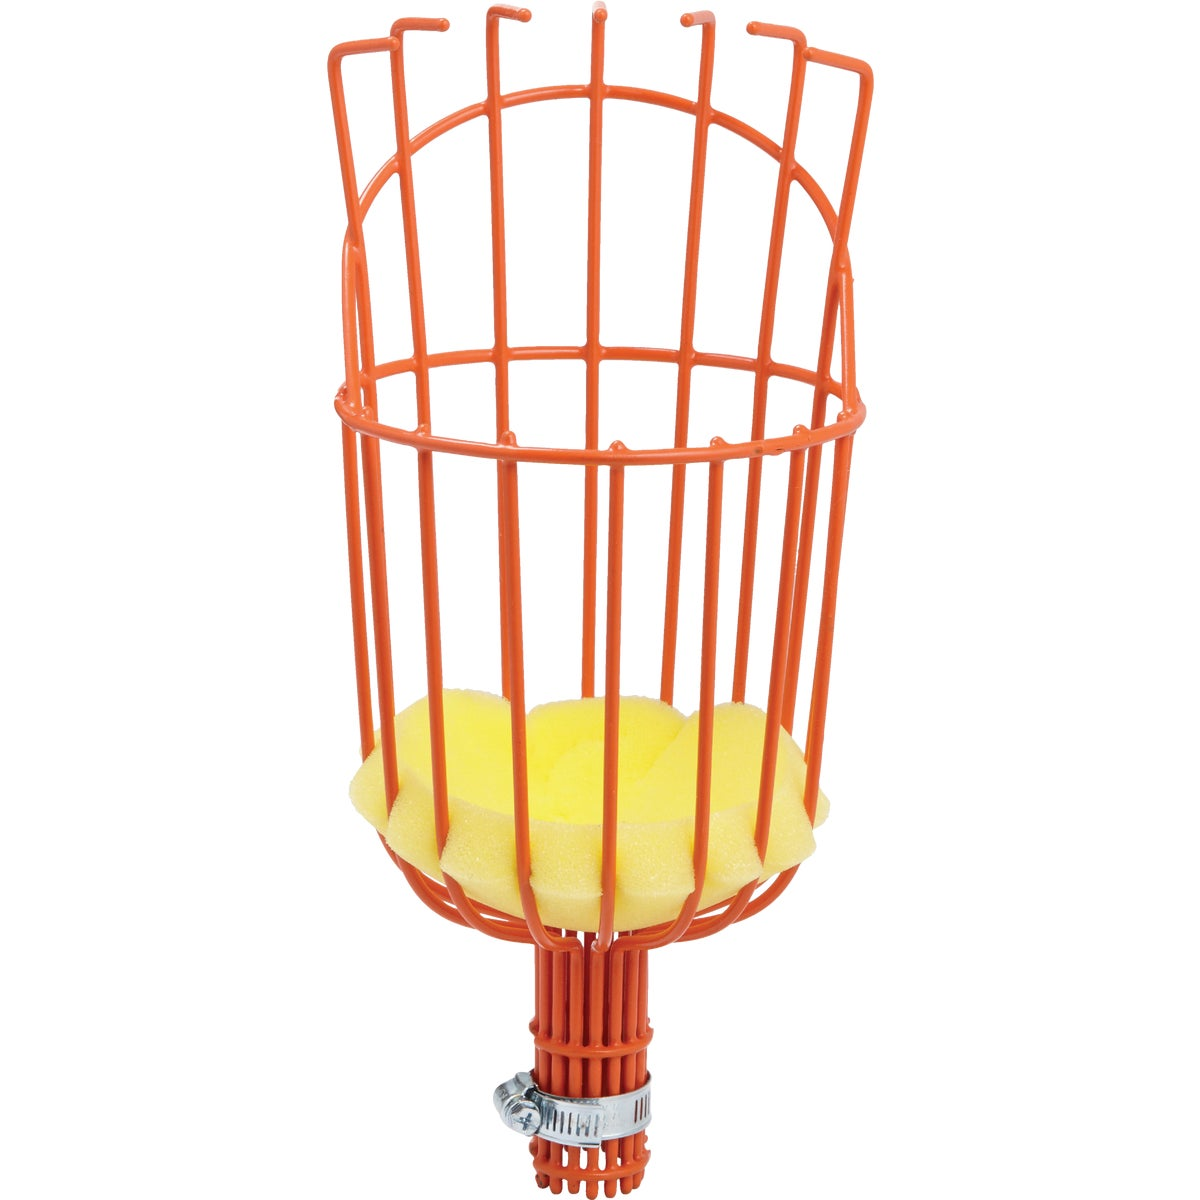 FRUIT PICKER BASKET - M3 by Do it Best